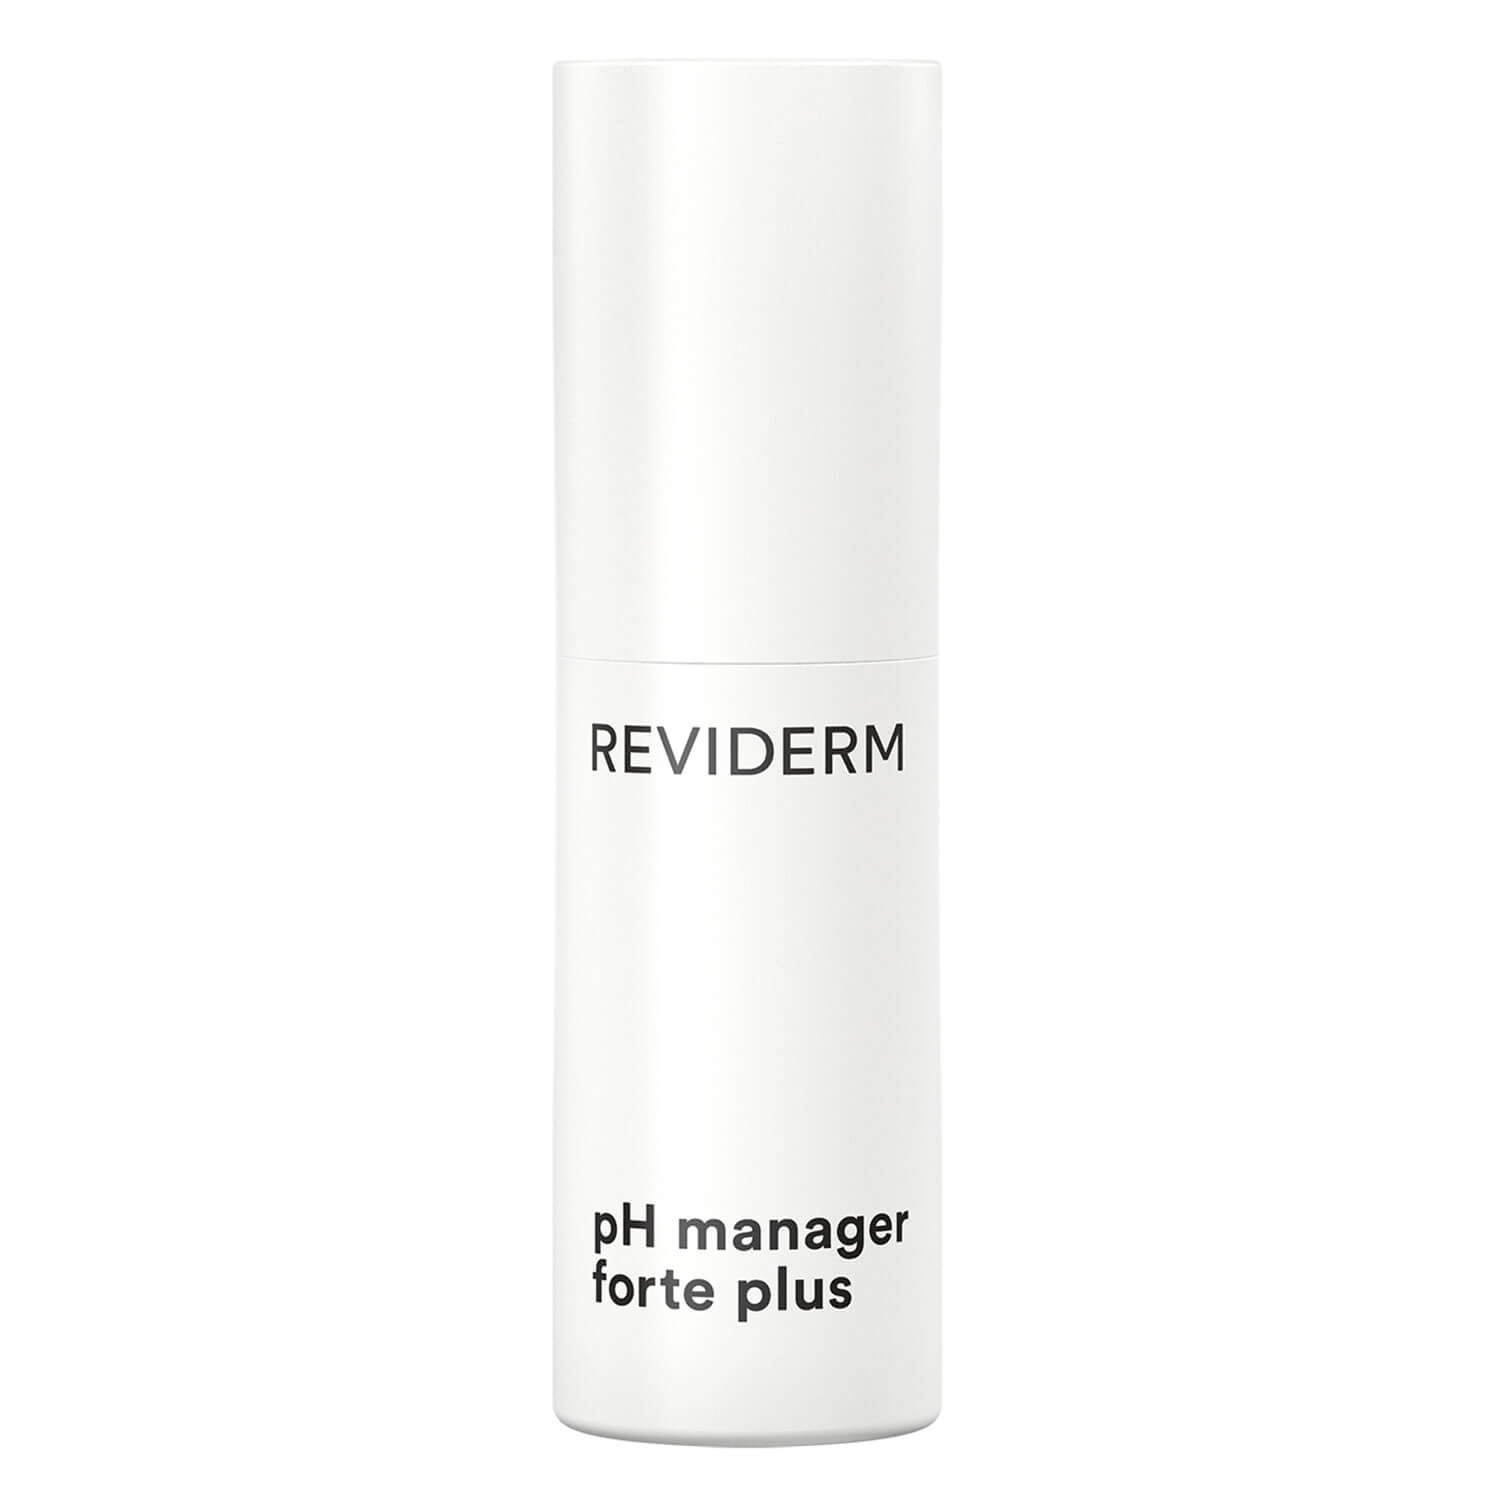 Reviderm Skin Care - pH manager forte plus - 30ml